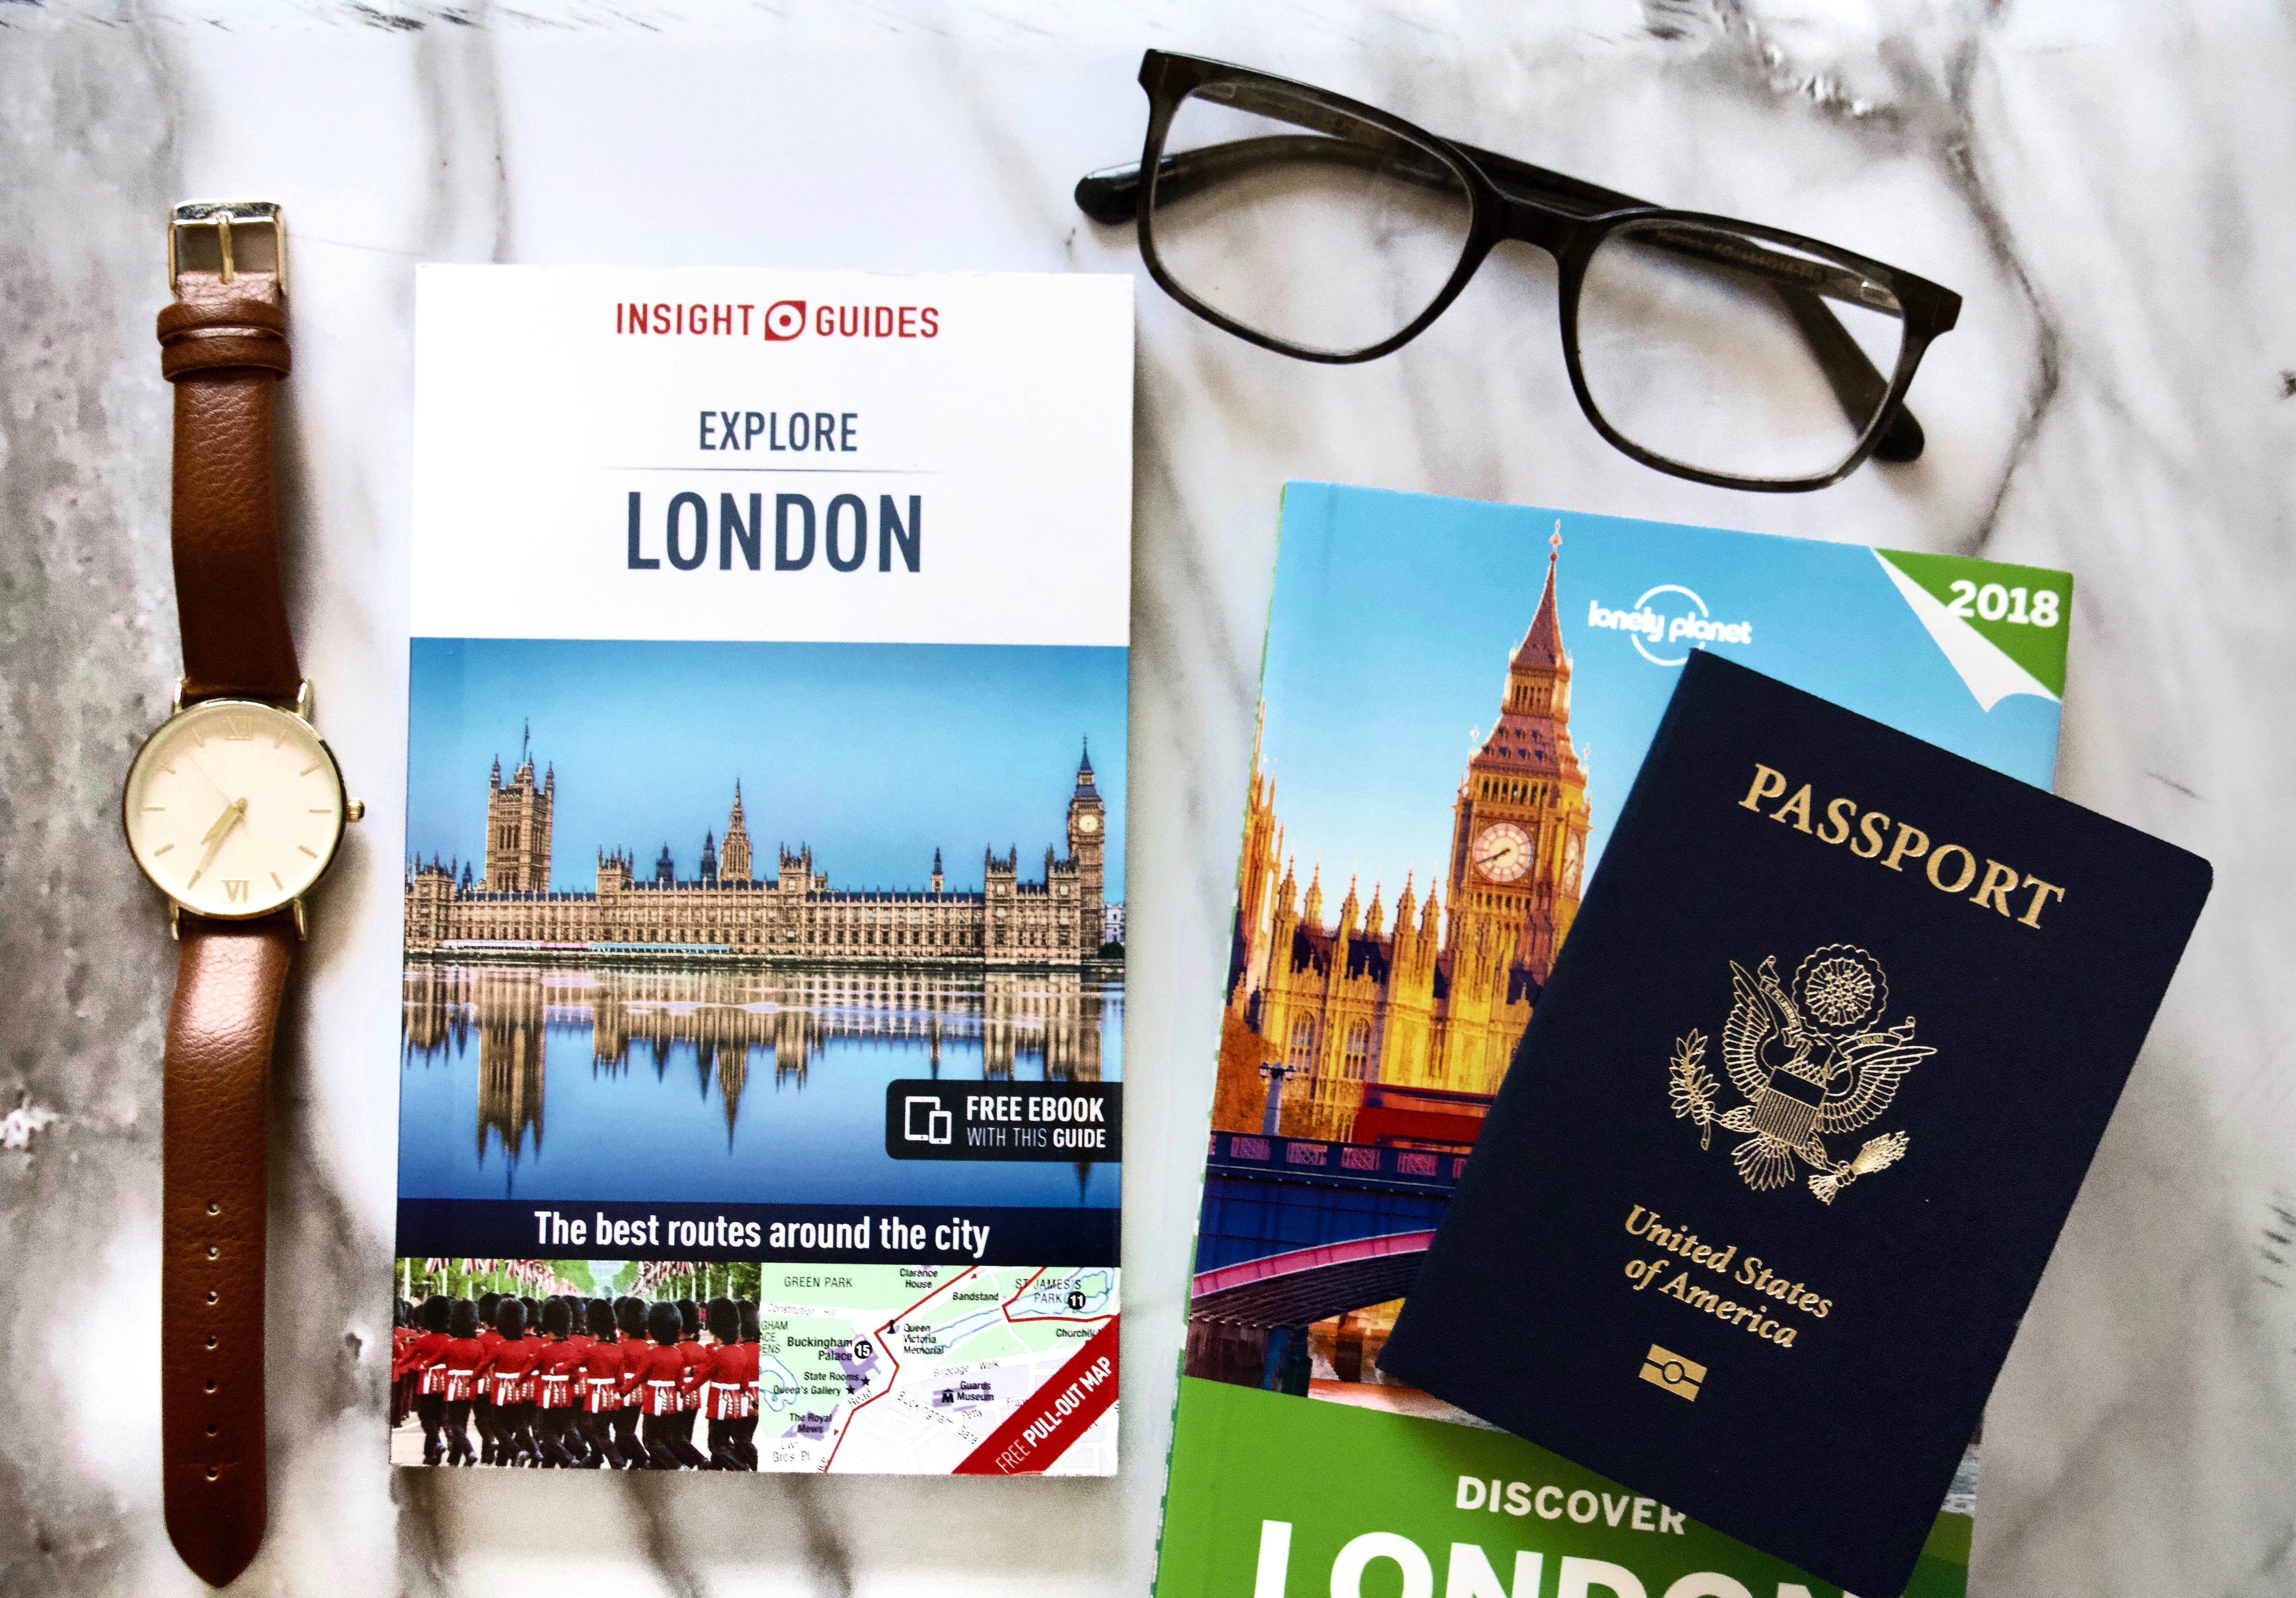 CAPAStudyAbroad_London_Spring2018_From Kelly Allen - Passport and Guide.jpg